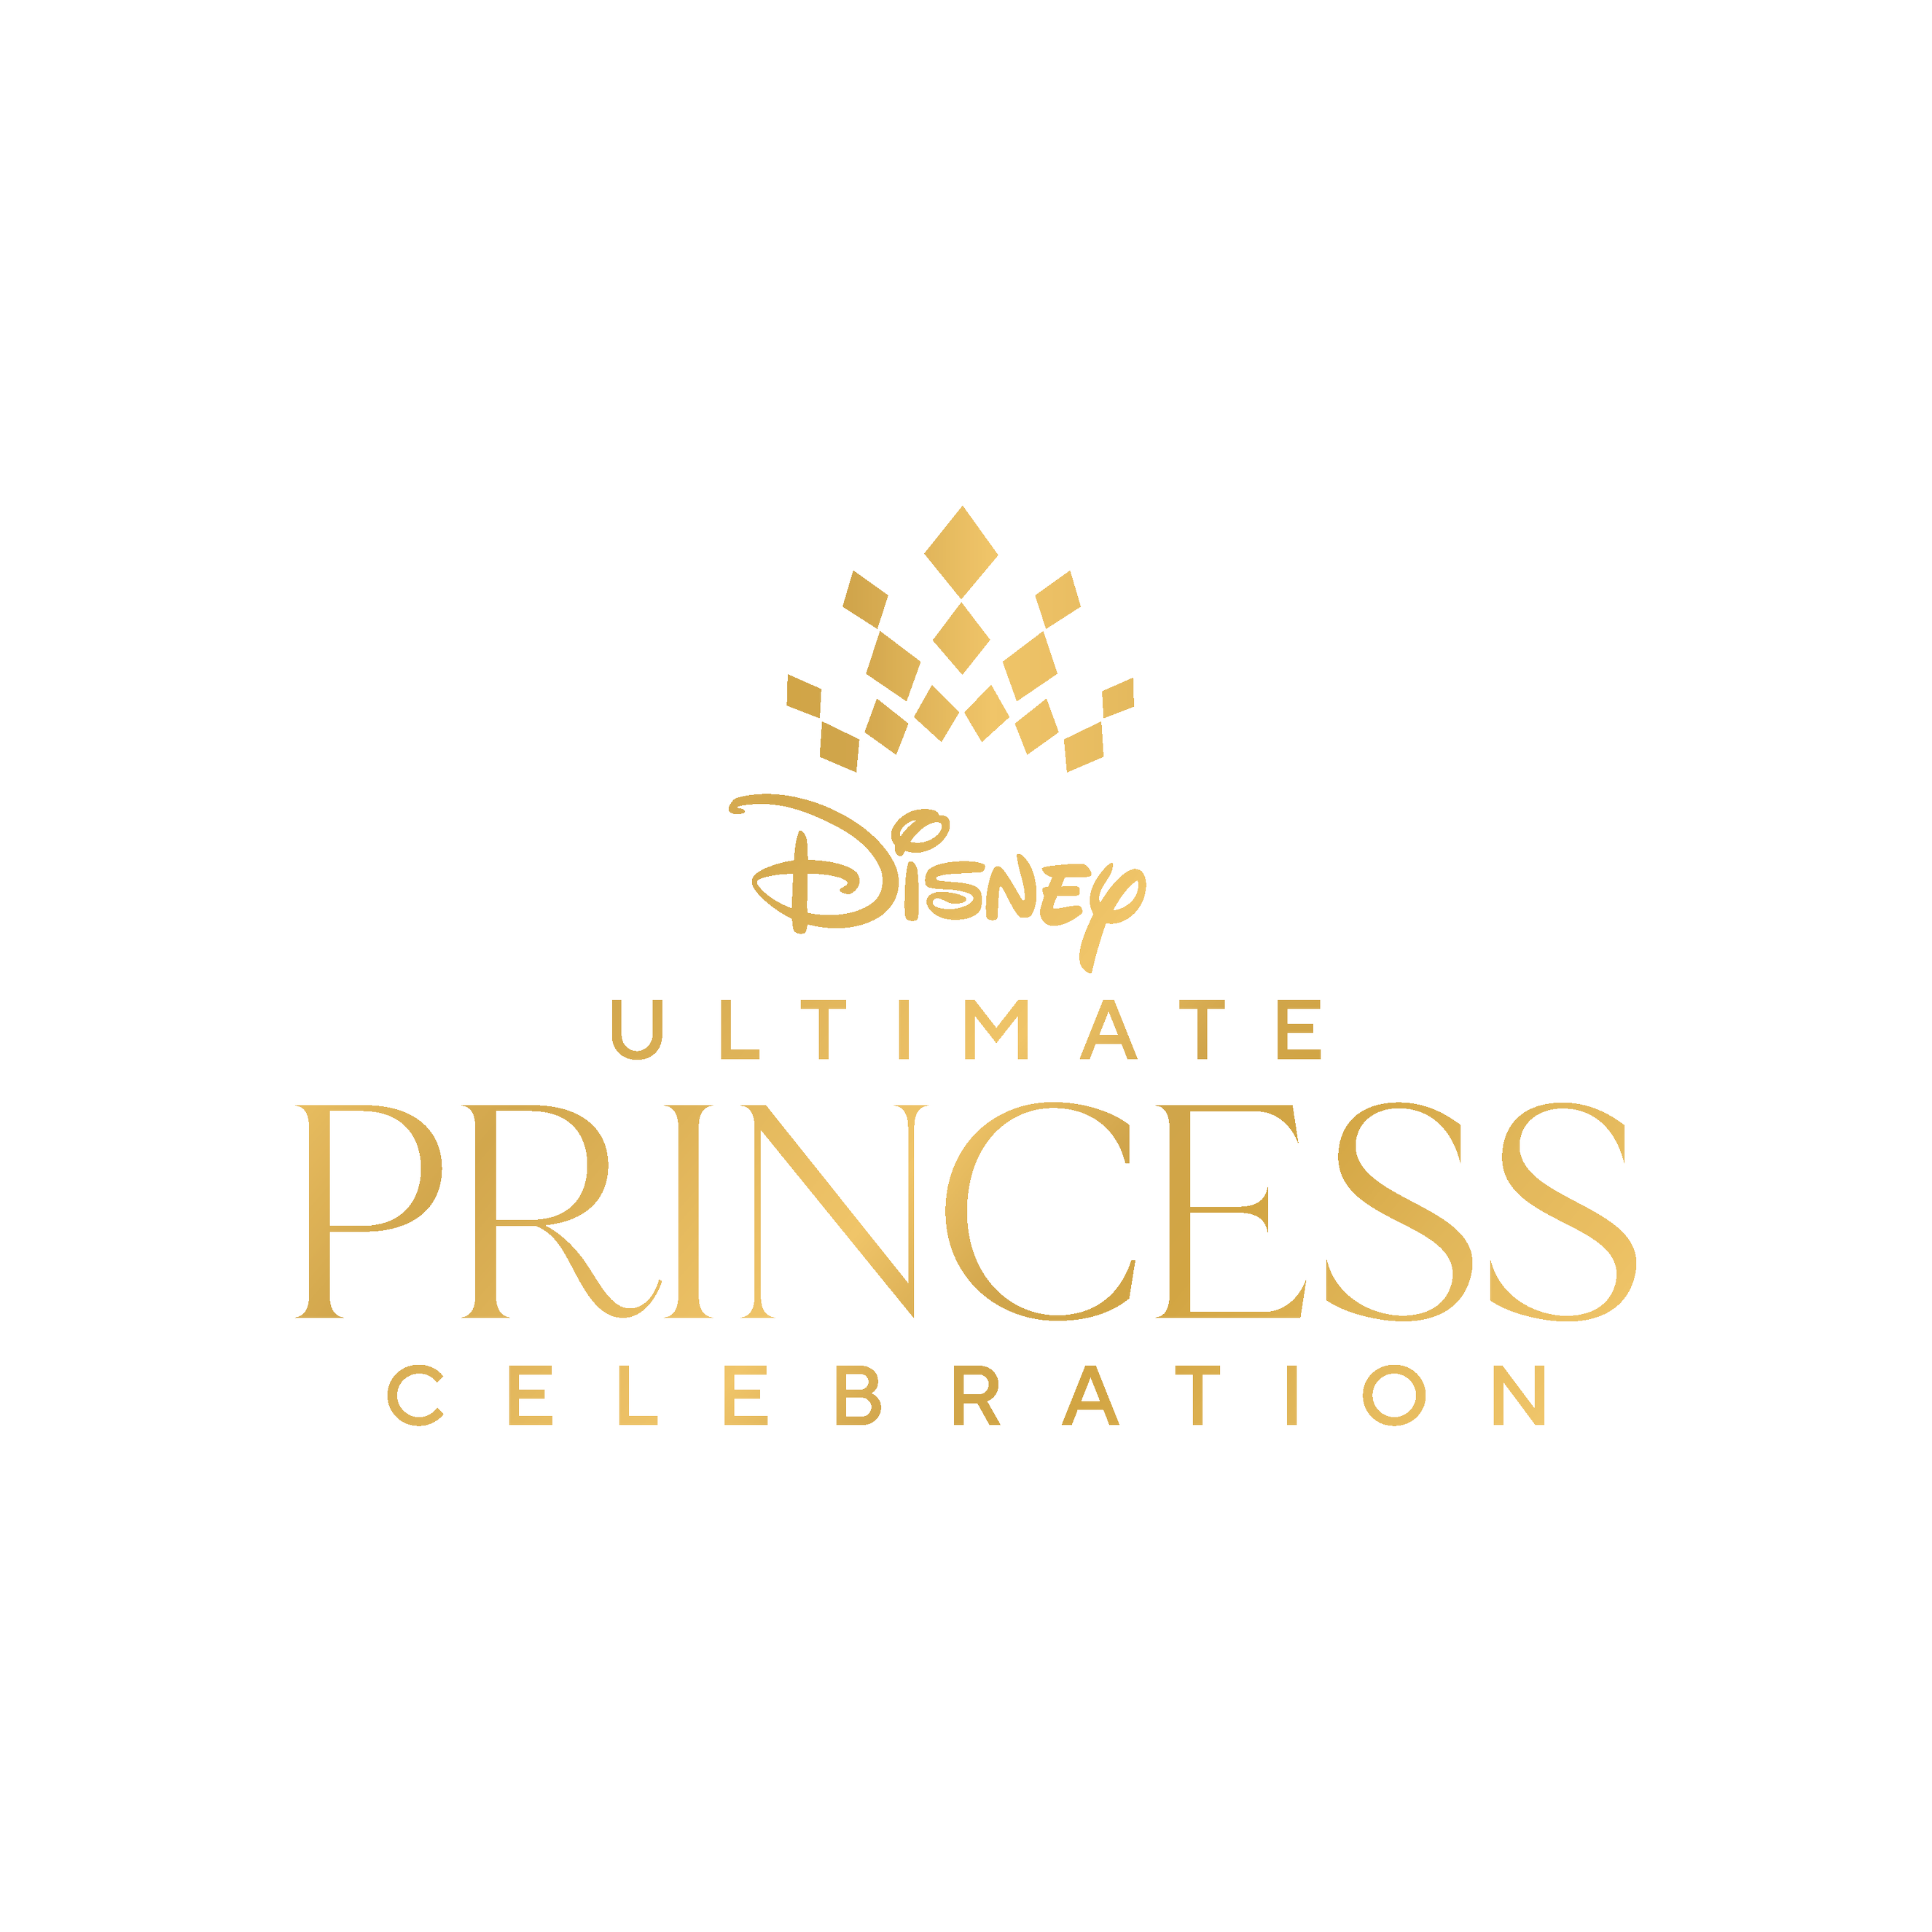 Disney launches multi-language music video for Ultimate Princess Celebration anthem Starting Now, featuring 15 fabulous artists from across the globe